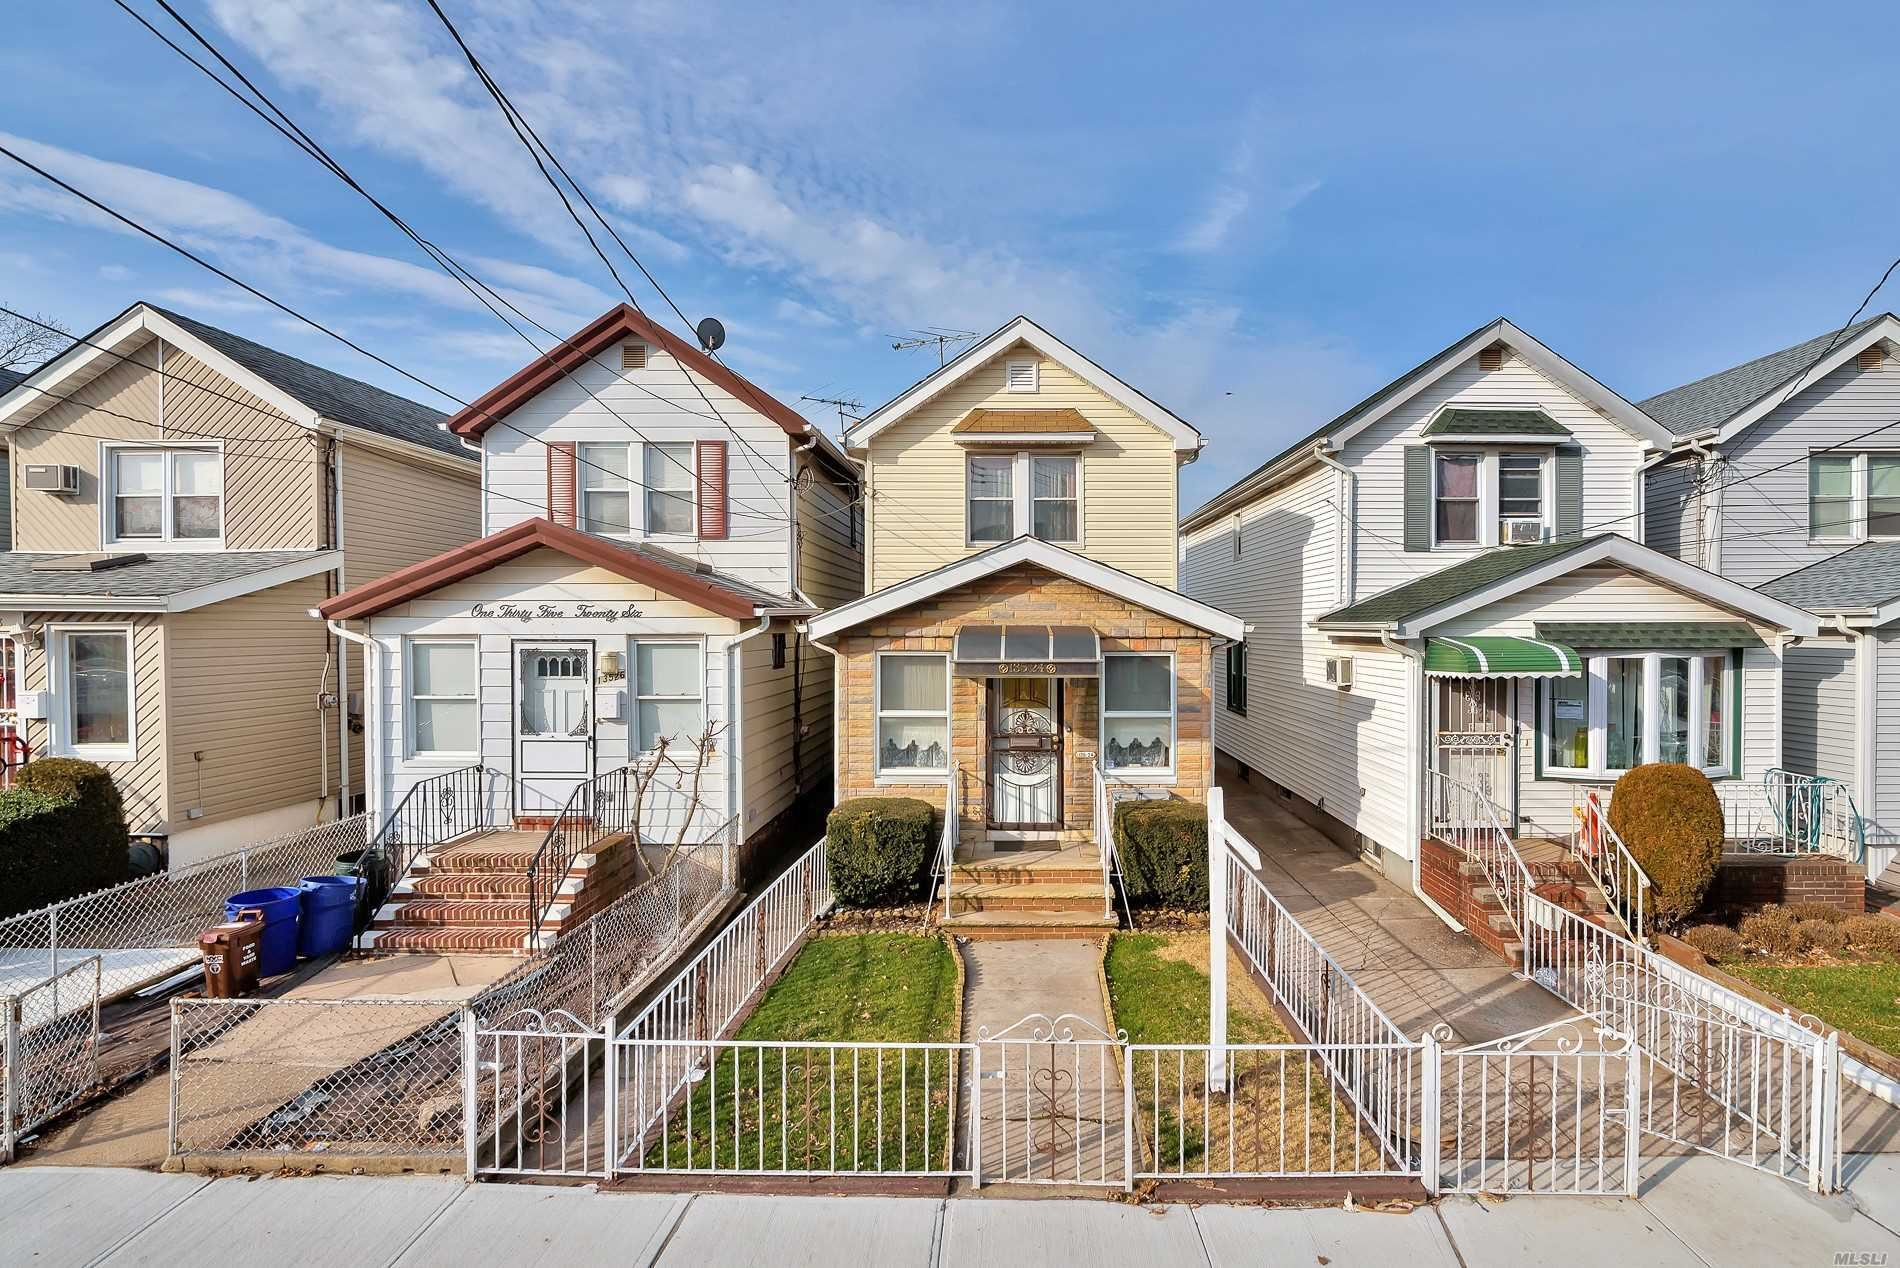 135-24 95th Street, Ozone Park, NY 11417 - MLS#: 3205133